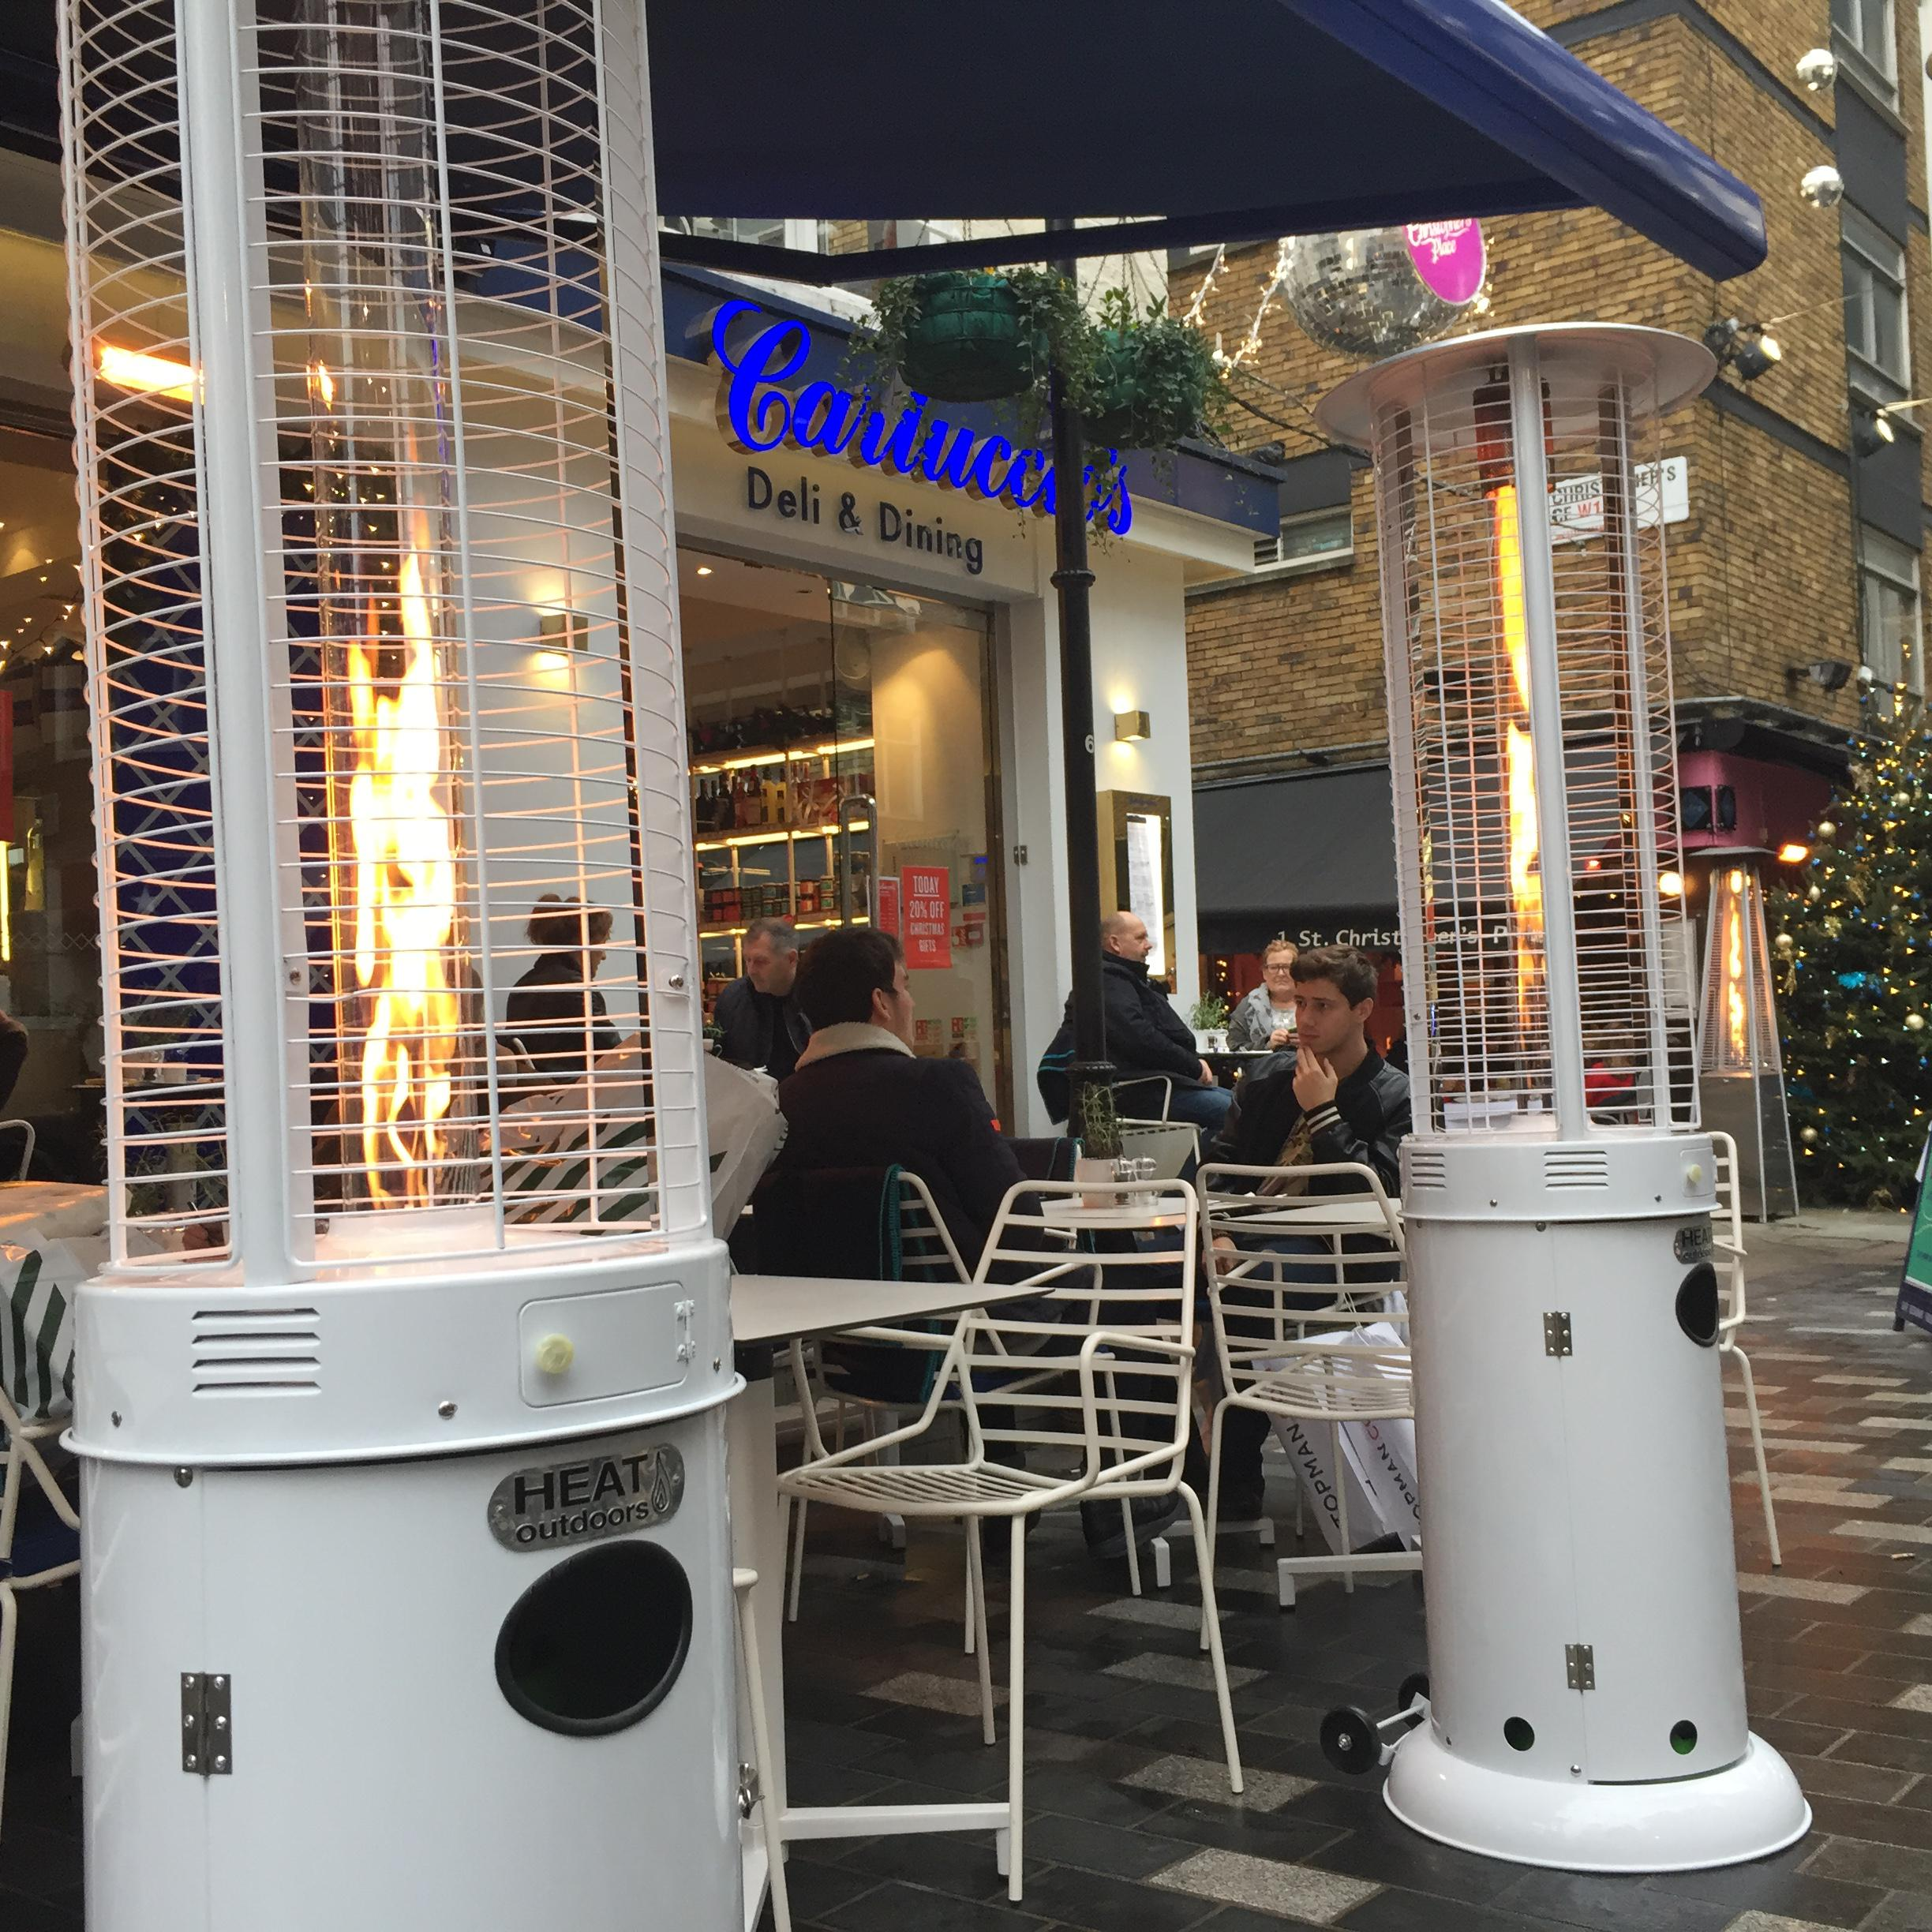 Heat Outdoors Goliath Gas Patio Heater at Carlucchio's London